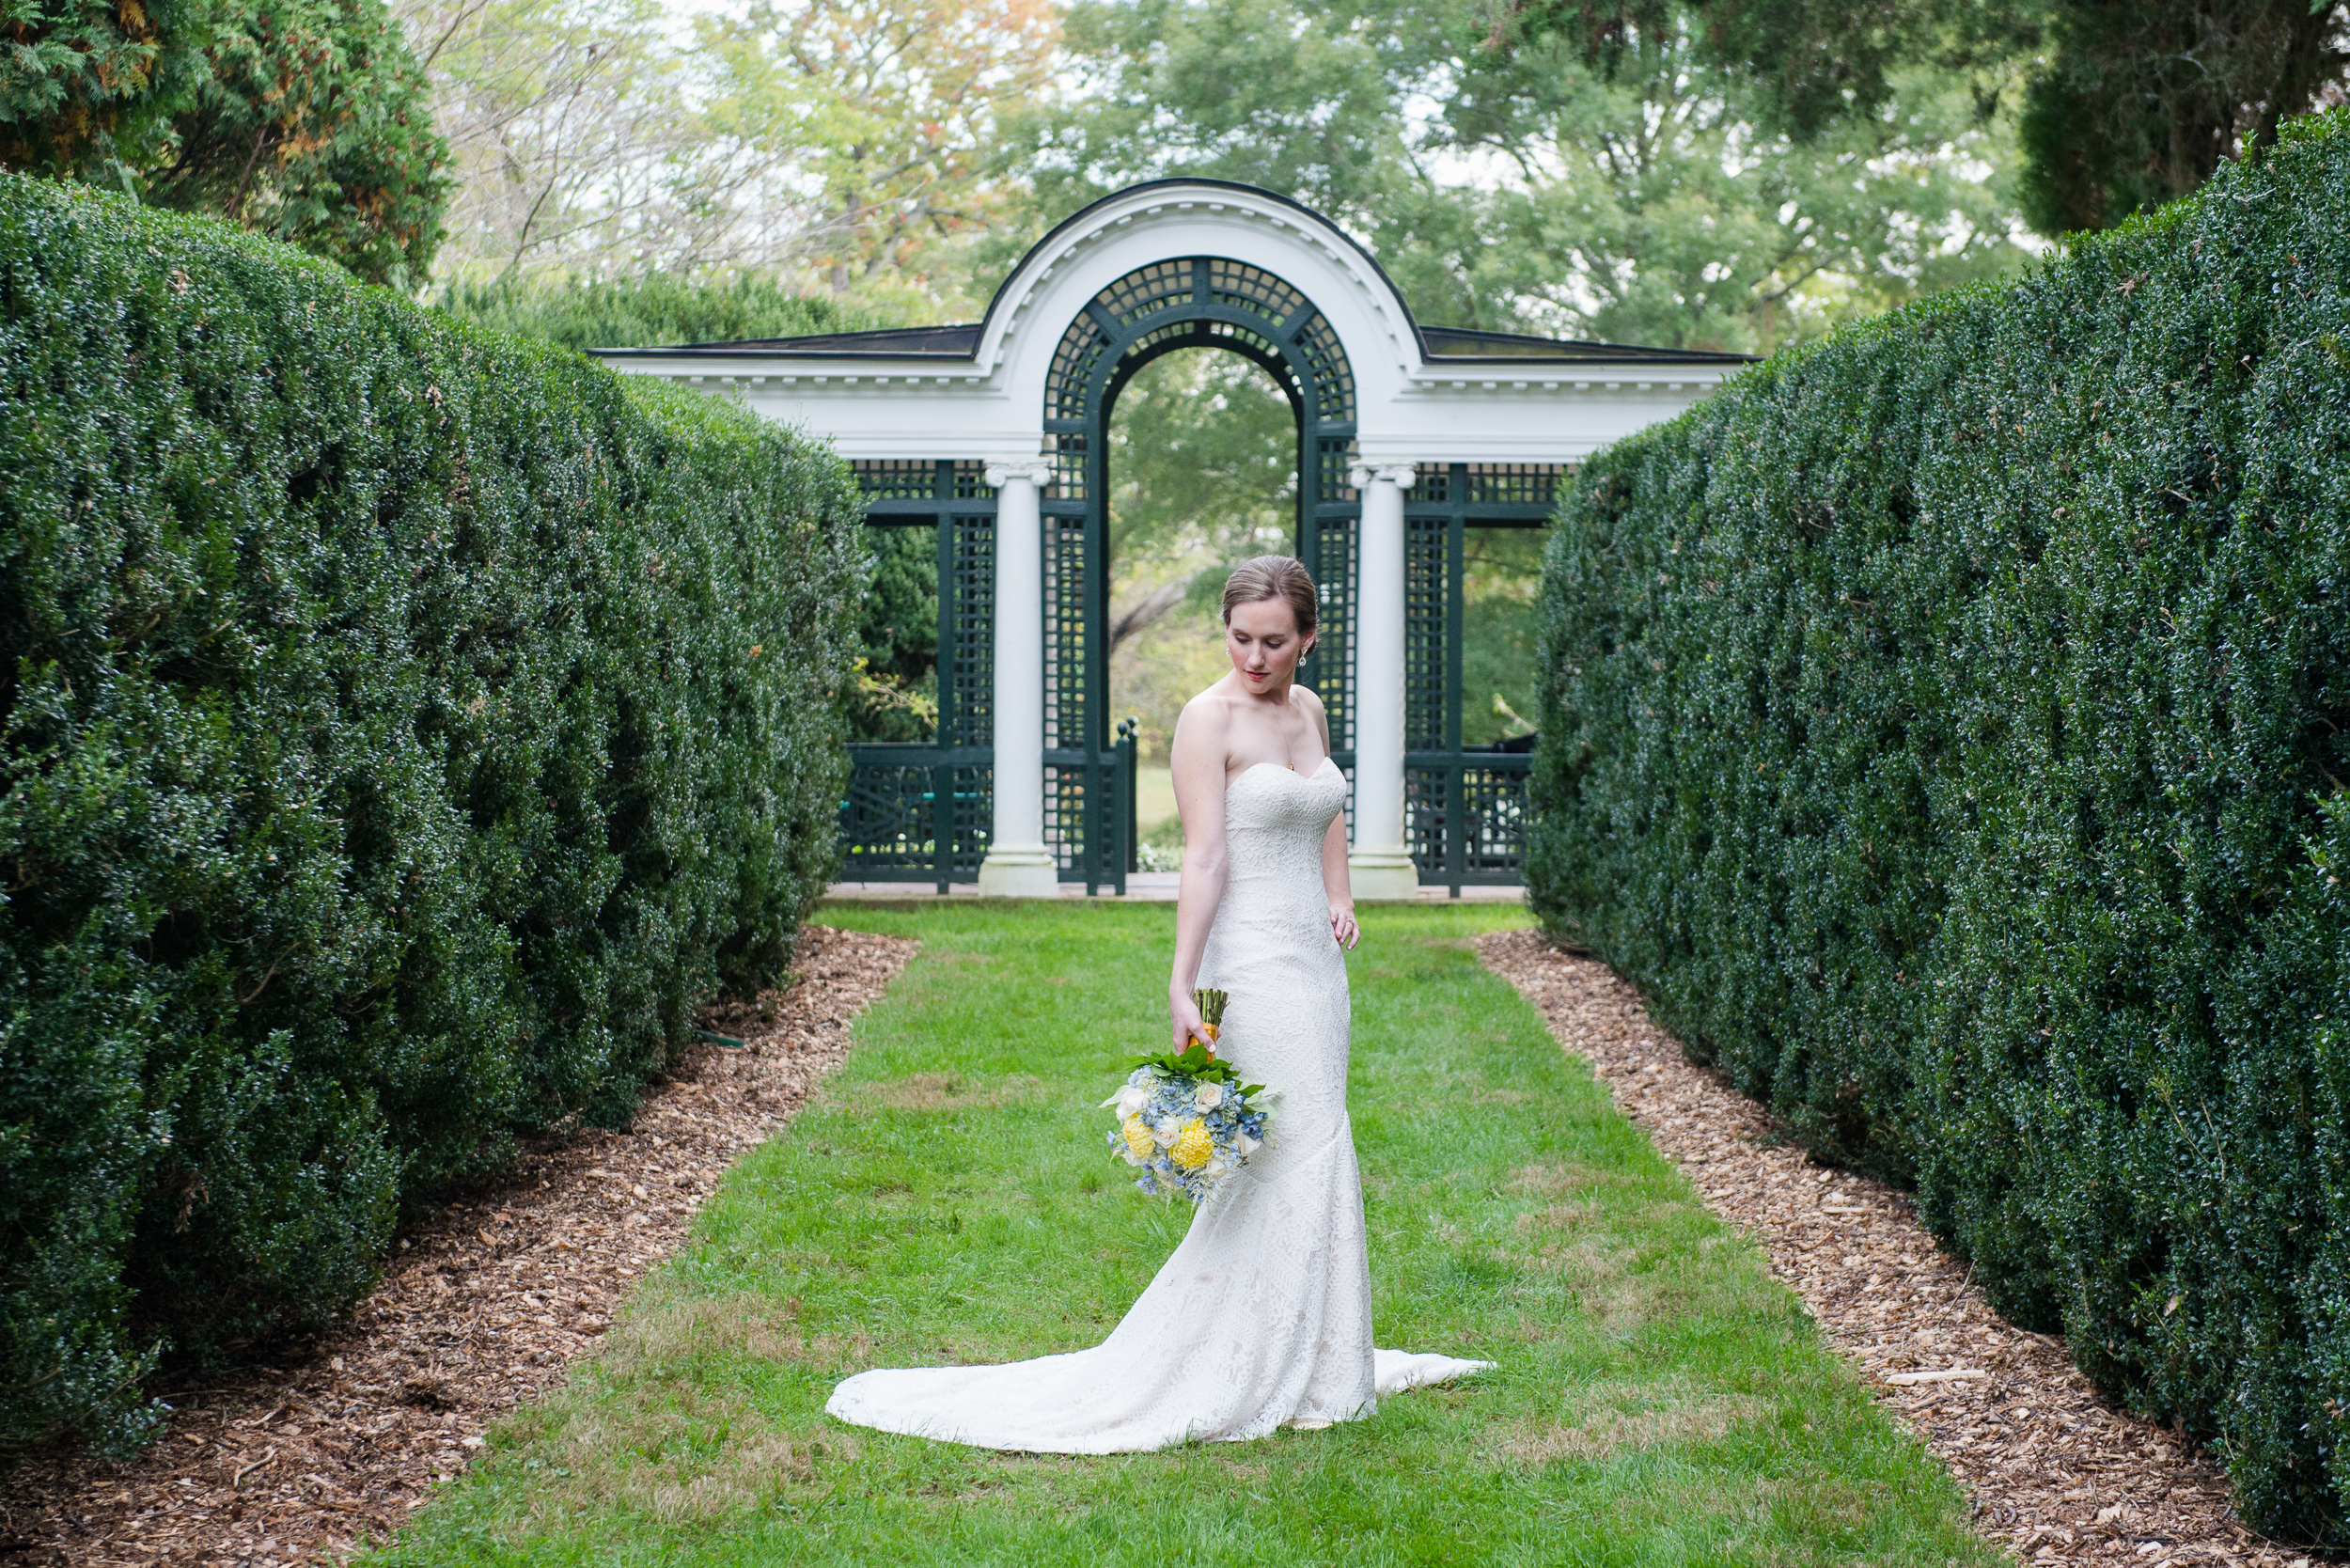 A bride in a romantic lace dress with spring blue and yellow flowers in the hedges of the garden at Oatlands Historic House and Gardens in Leesburg, Virginia